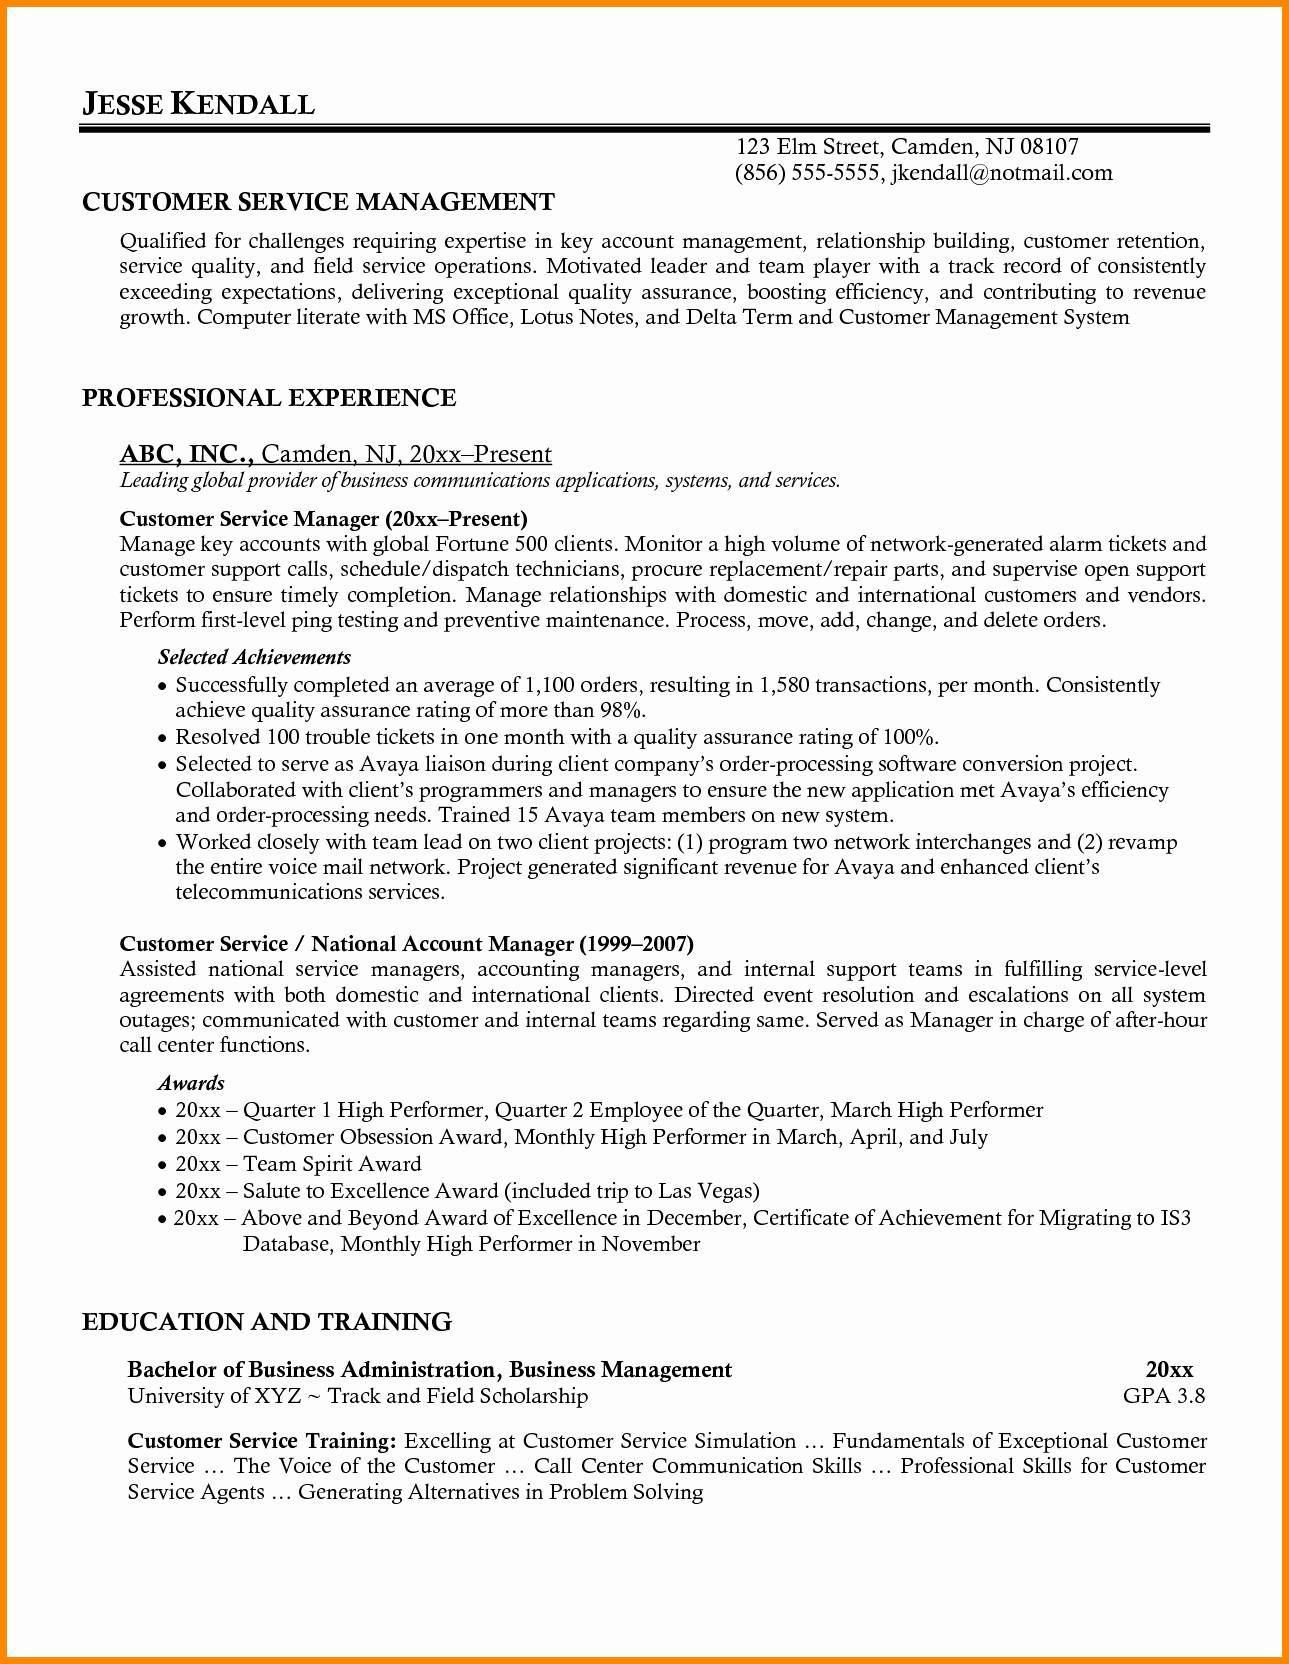 Service Contract Renewal Letter Template - Contract Renewal Letter Template Awesome 13 Luxury Managed Services